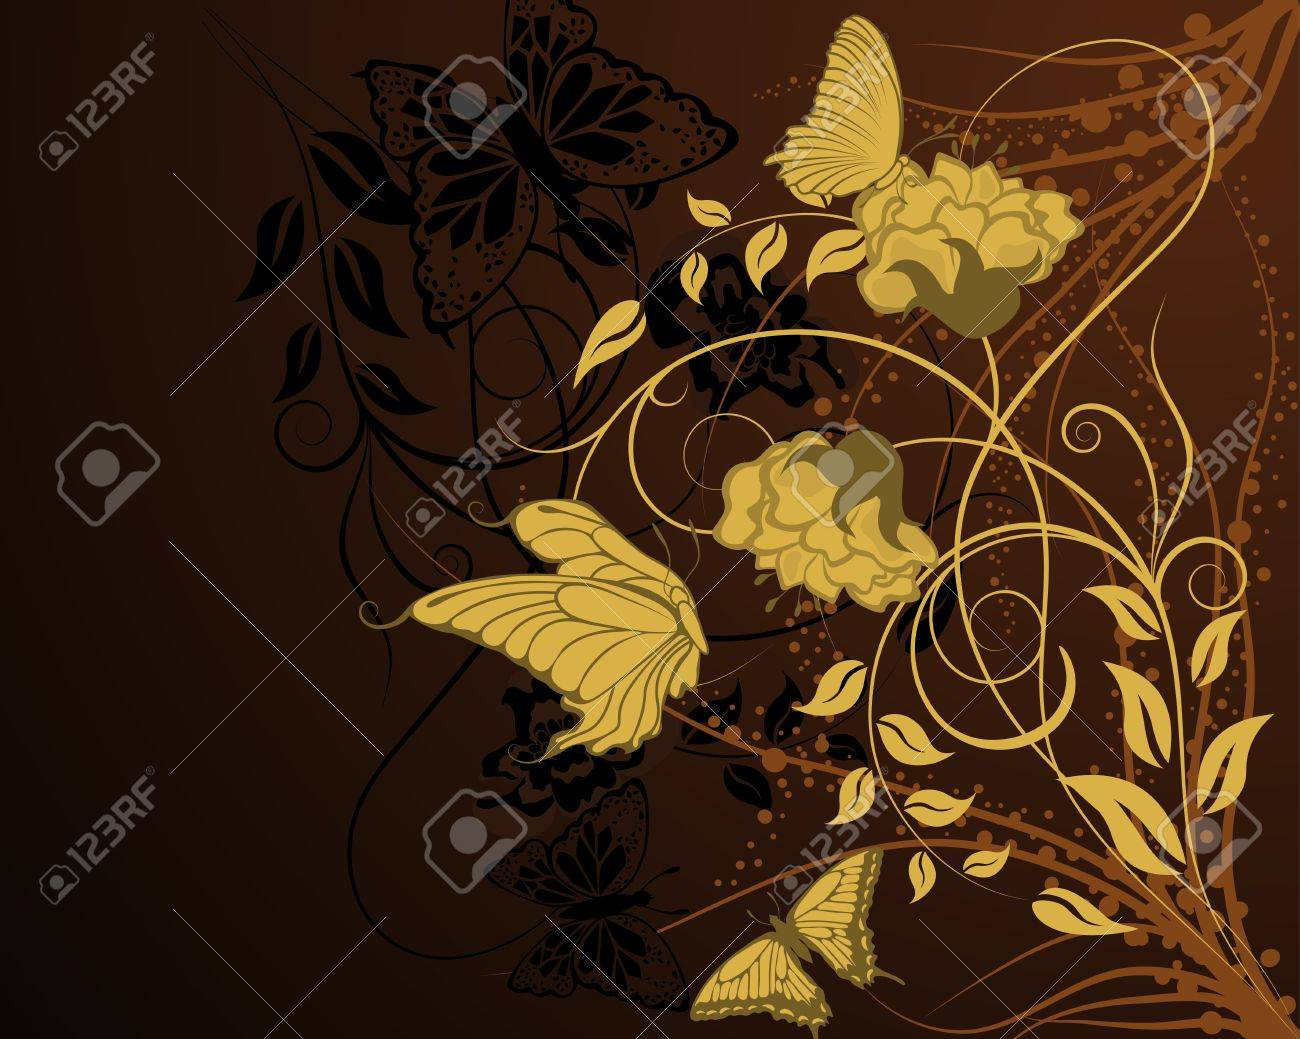 Abstract floral vector background for design use Stock Vector - 10914040